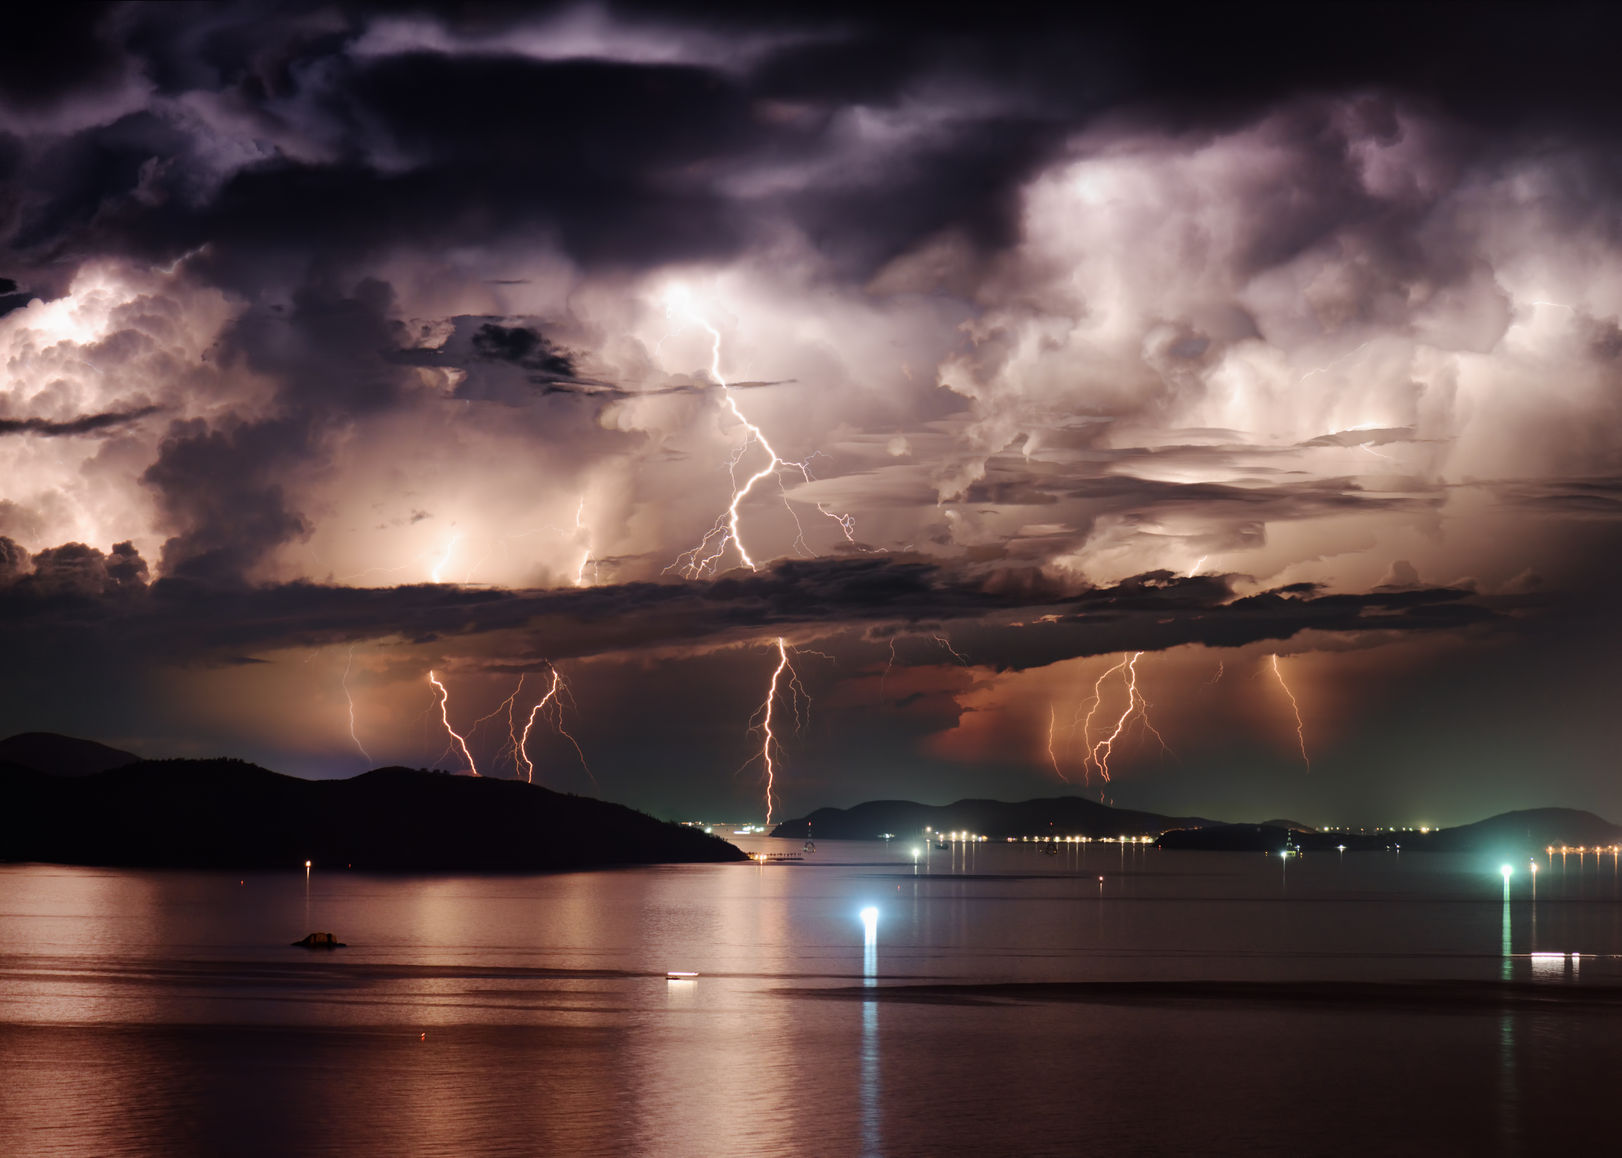 41789107 - beautiful view of dramatic stormy sky and lightning over nha trang bay of south china sea in khanh hoa province at night in vietnam. nha trang city is a popular tourist destination of asia.